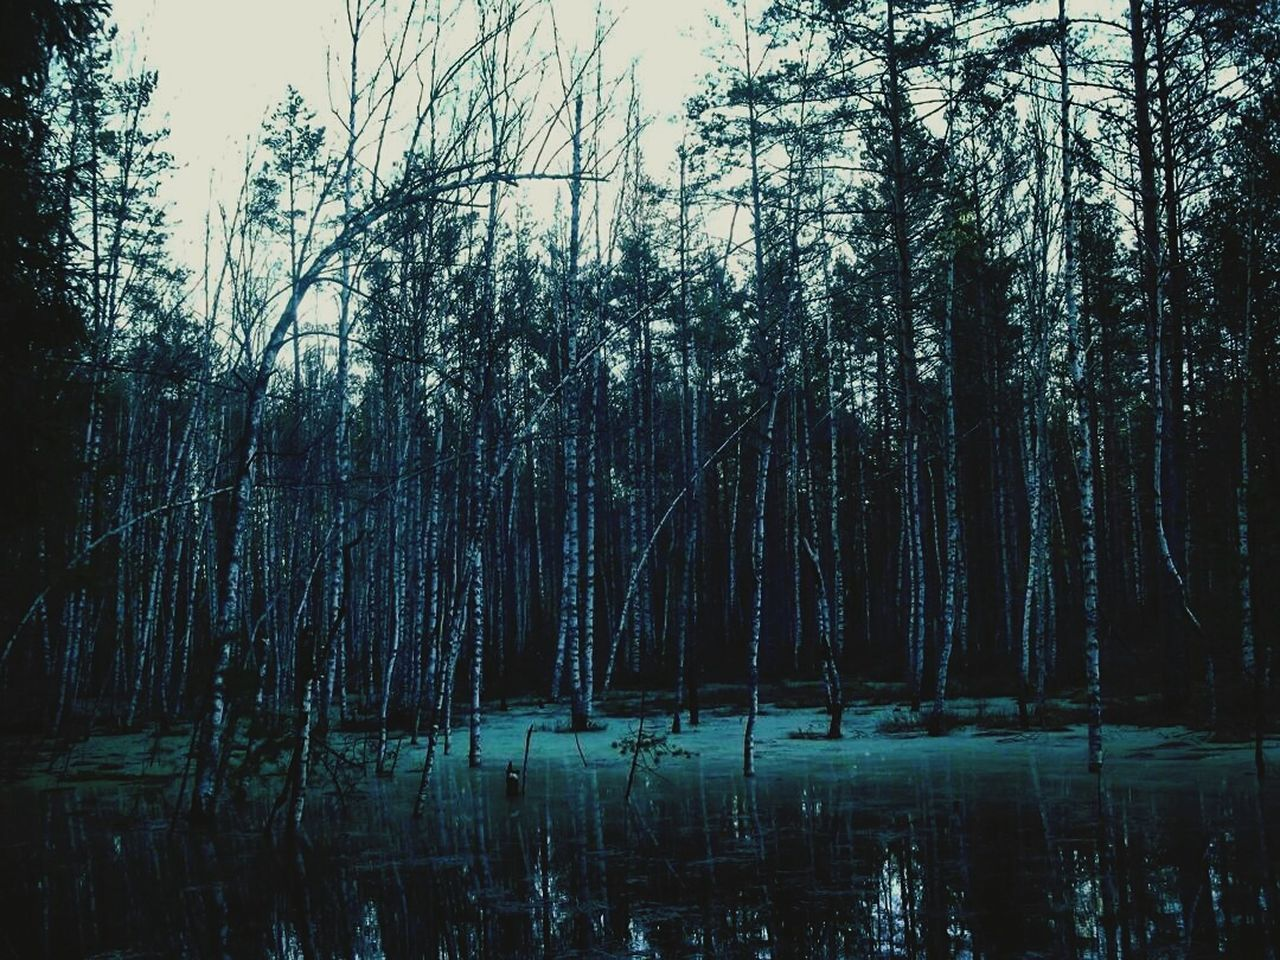 tree, forest, tranquility, nature, no people, lake, tranquil scene, beauty in nature, water, outdoors, scenics, day, growth, travel destinations, landscape, bare tree, sky